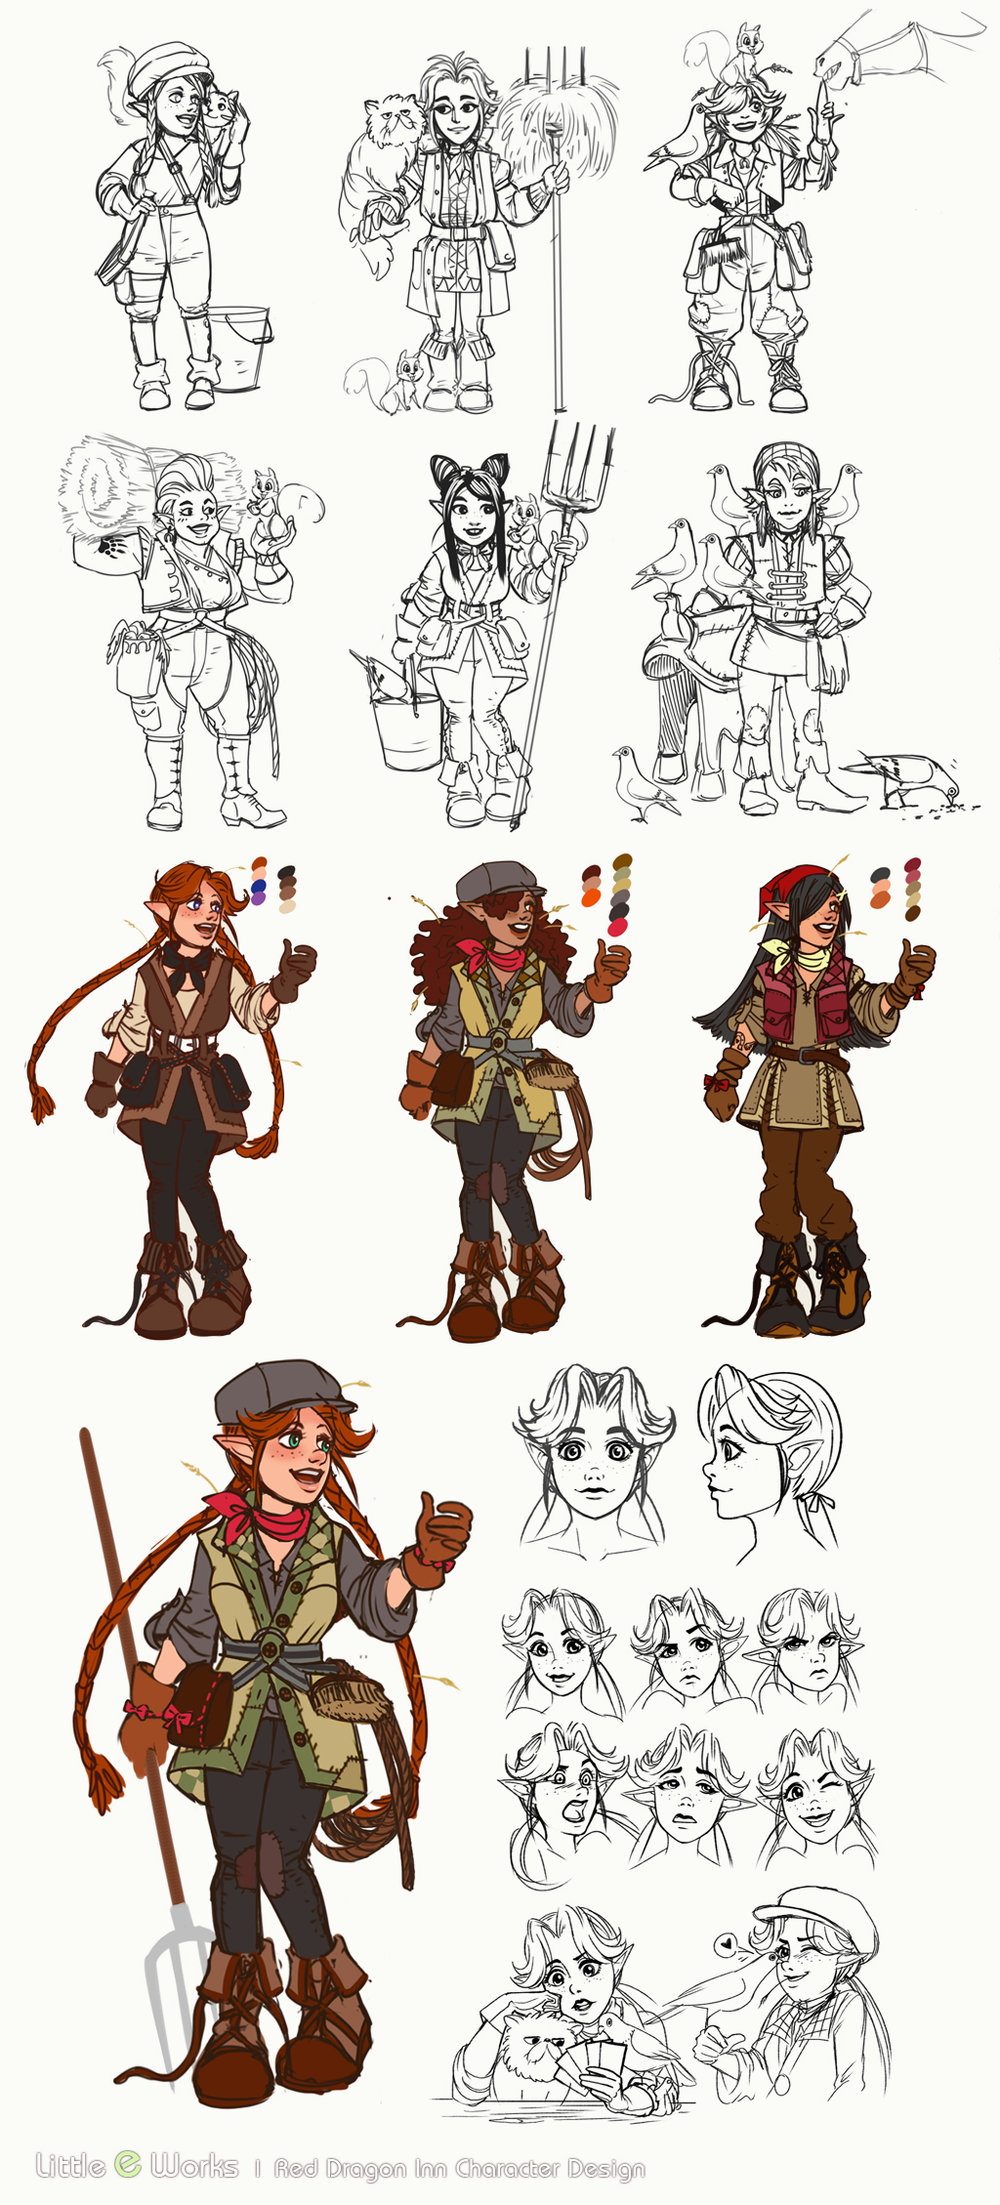 Conceptual sketches for RDI7 character, Molly, the Stablehand